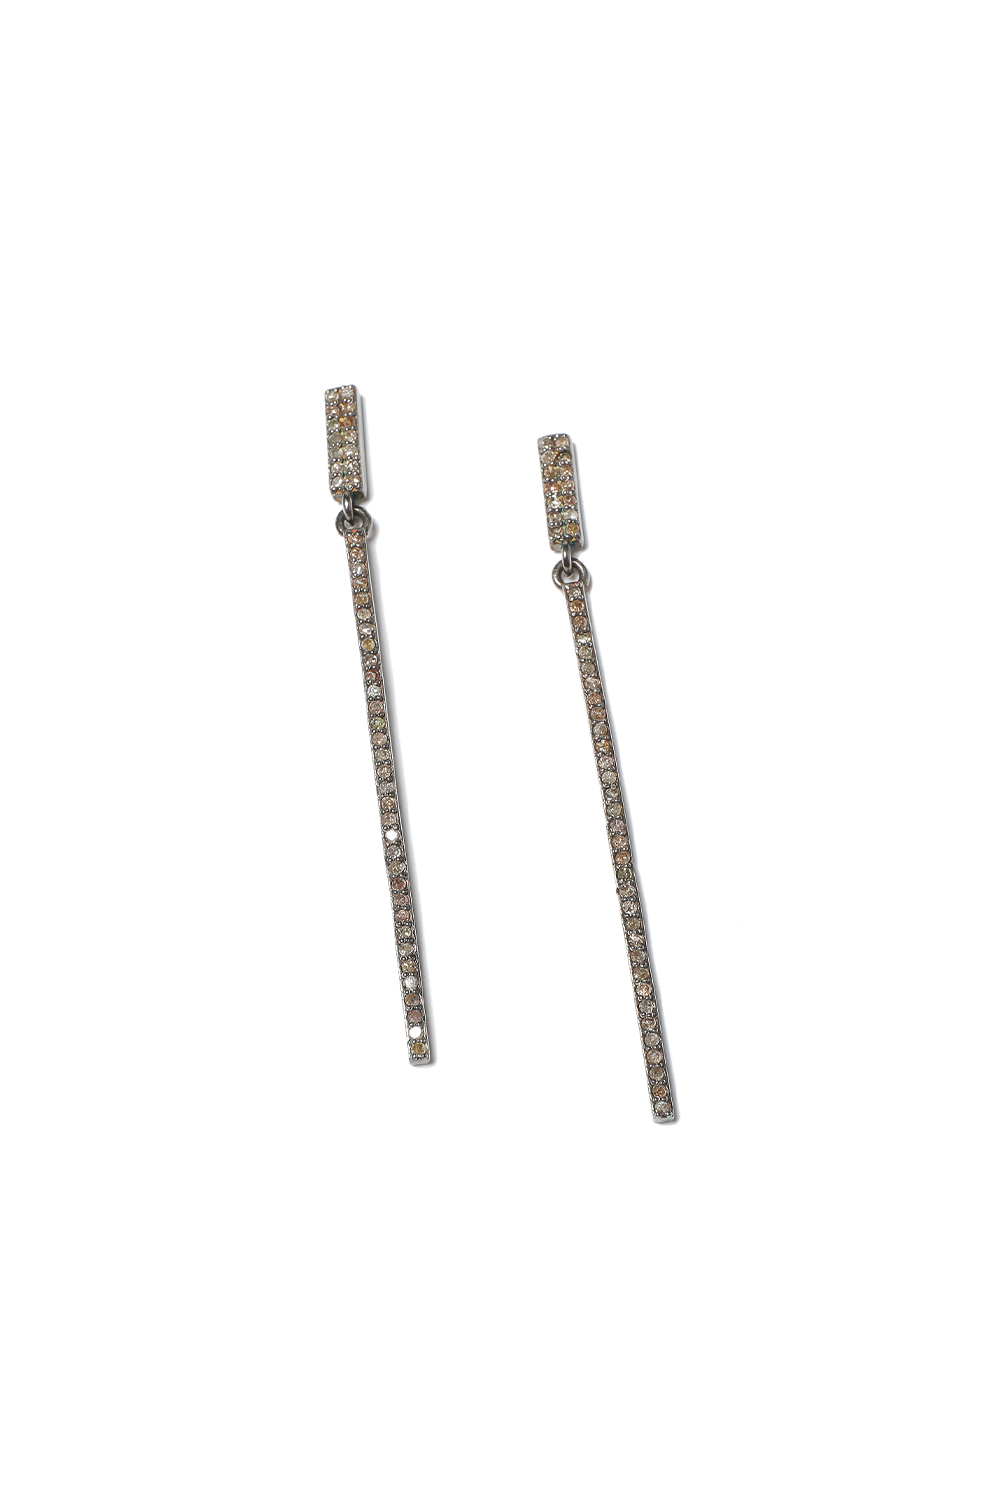 Margo Morrison Diamond Long Line Earrings